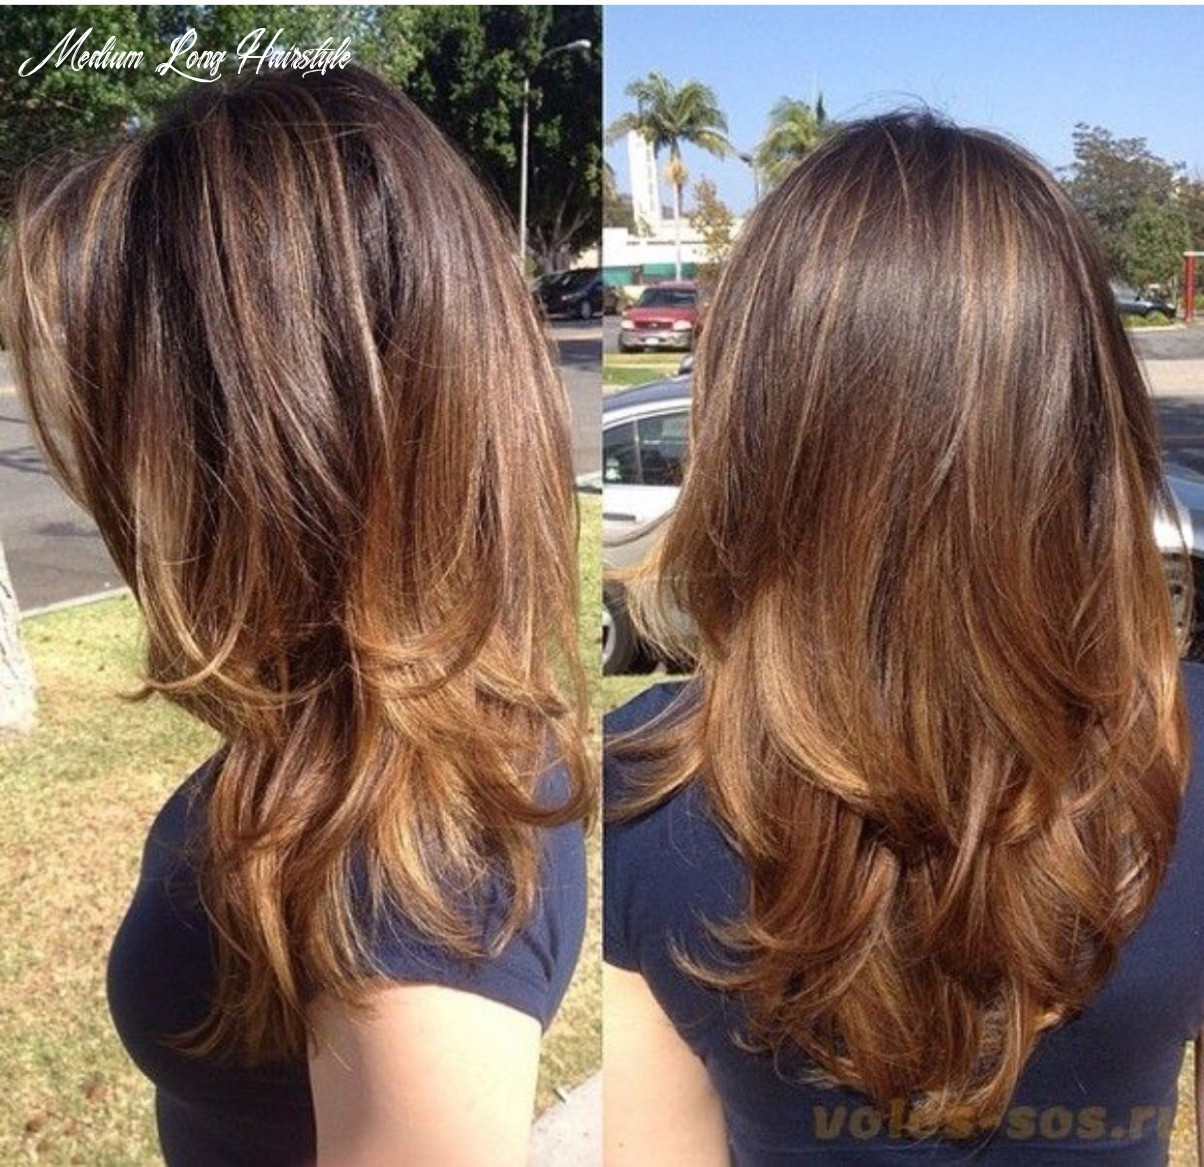 Hair cut | hair ideas :) | hair, layered hair und hair cuts medium long hairstyle